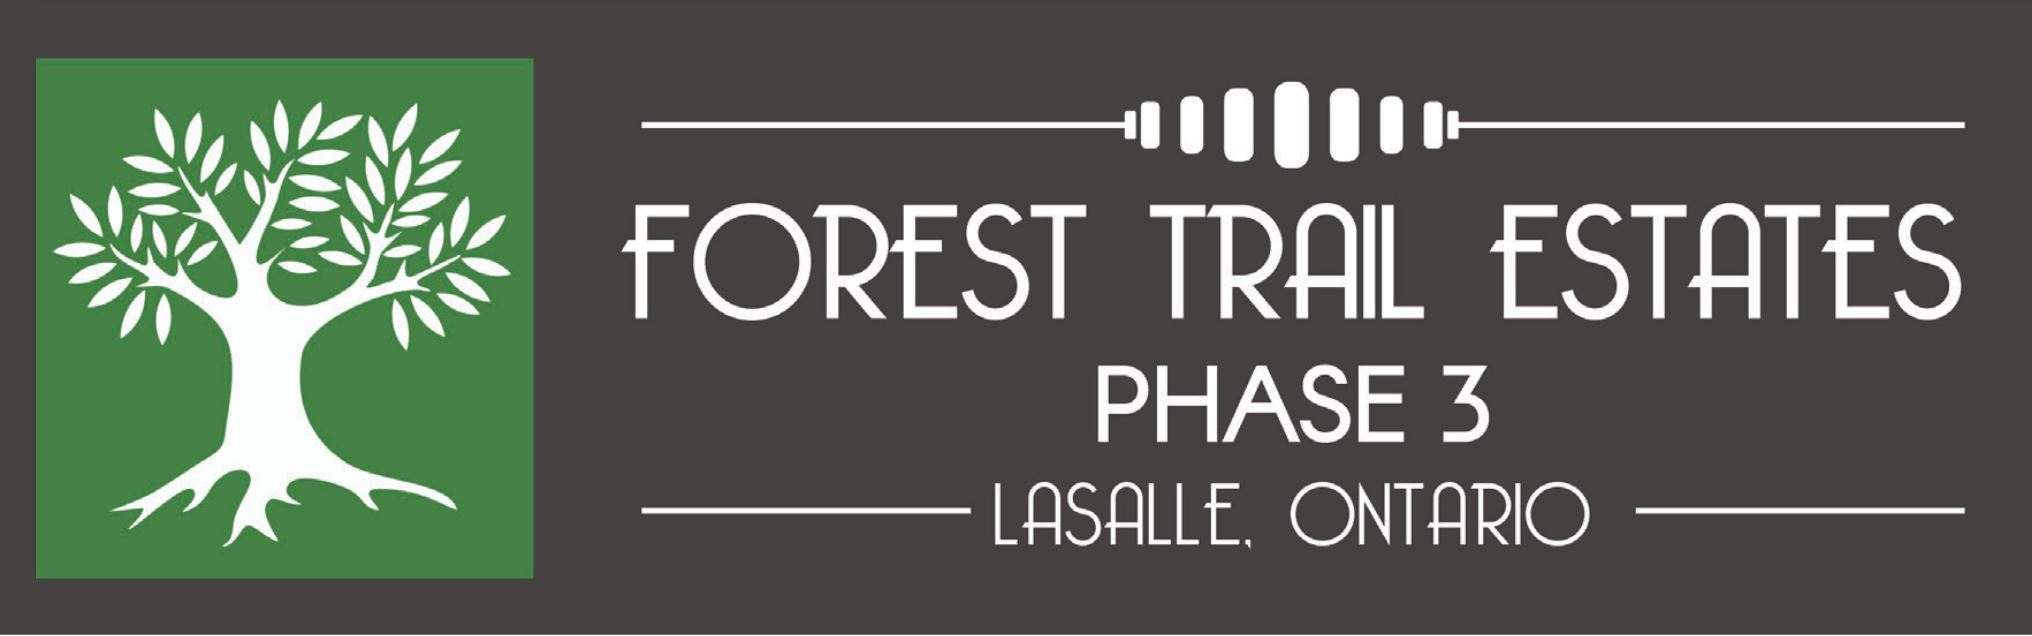 FOREST TRAILS PHASE 3